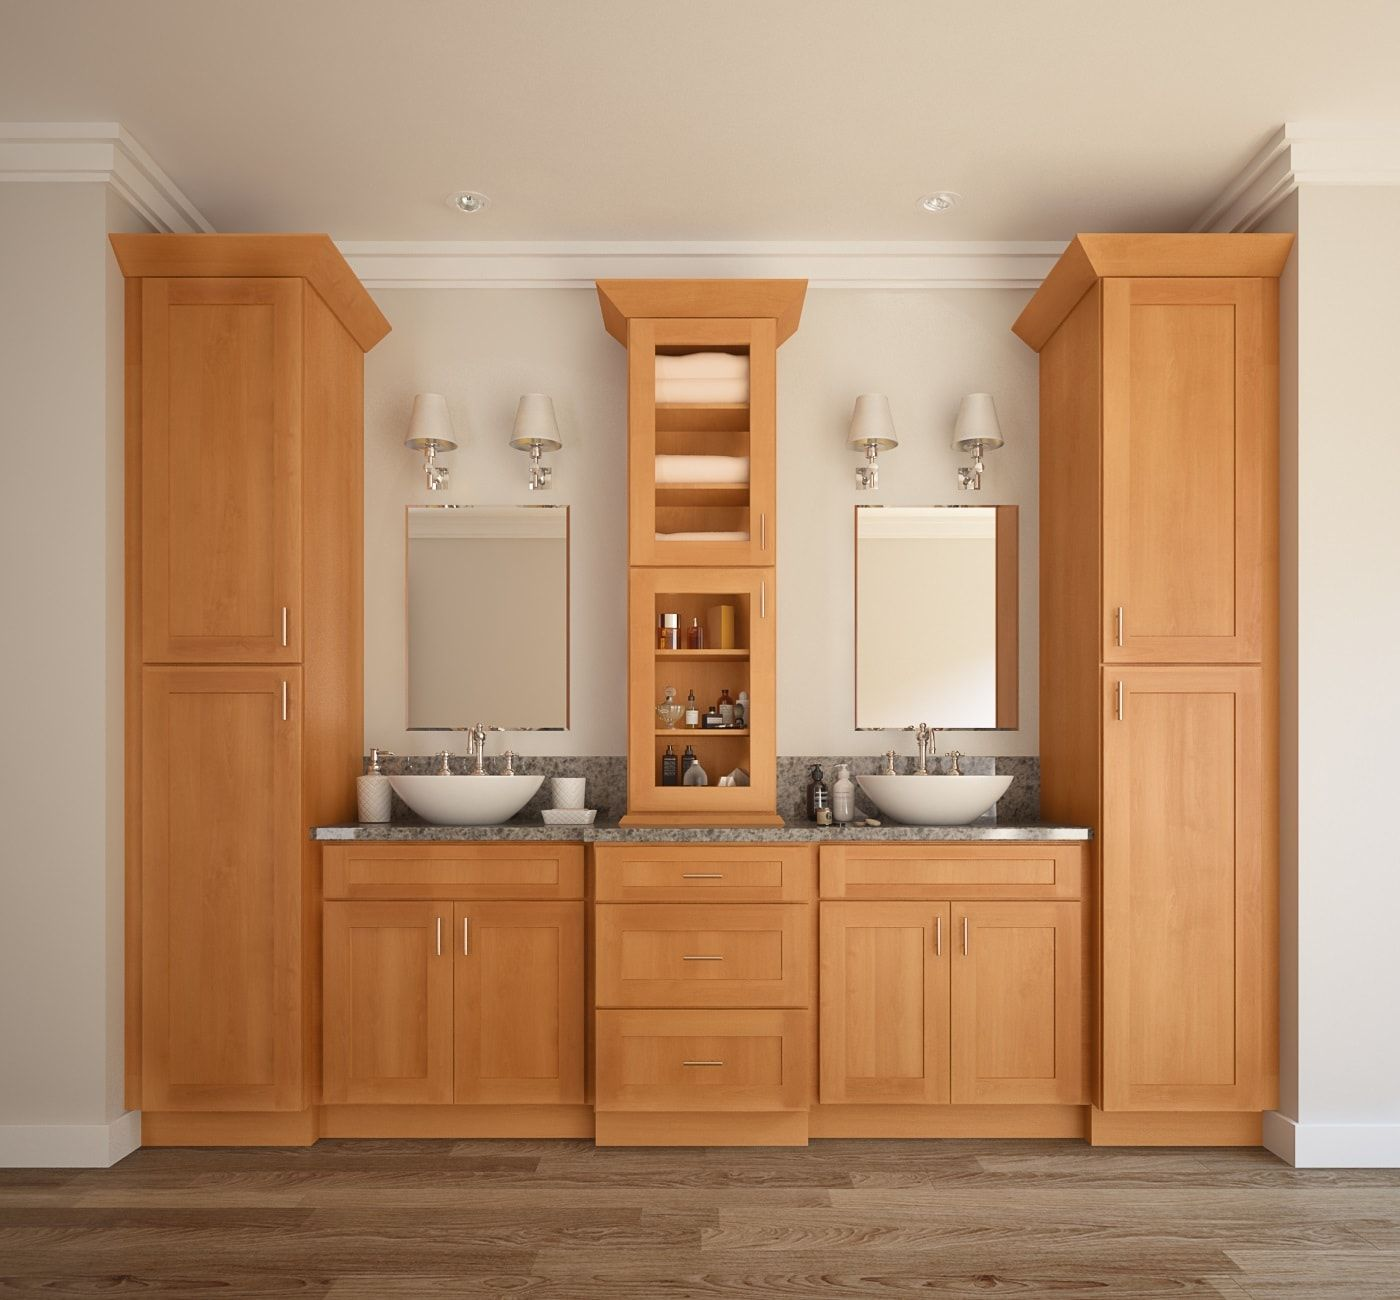 single integrated bathroom vanities shop selections vanity style euro sink lowes charming espresso